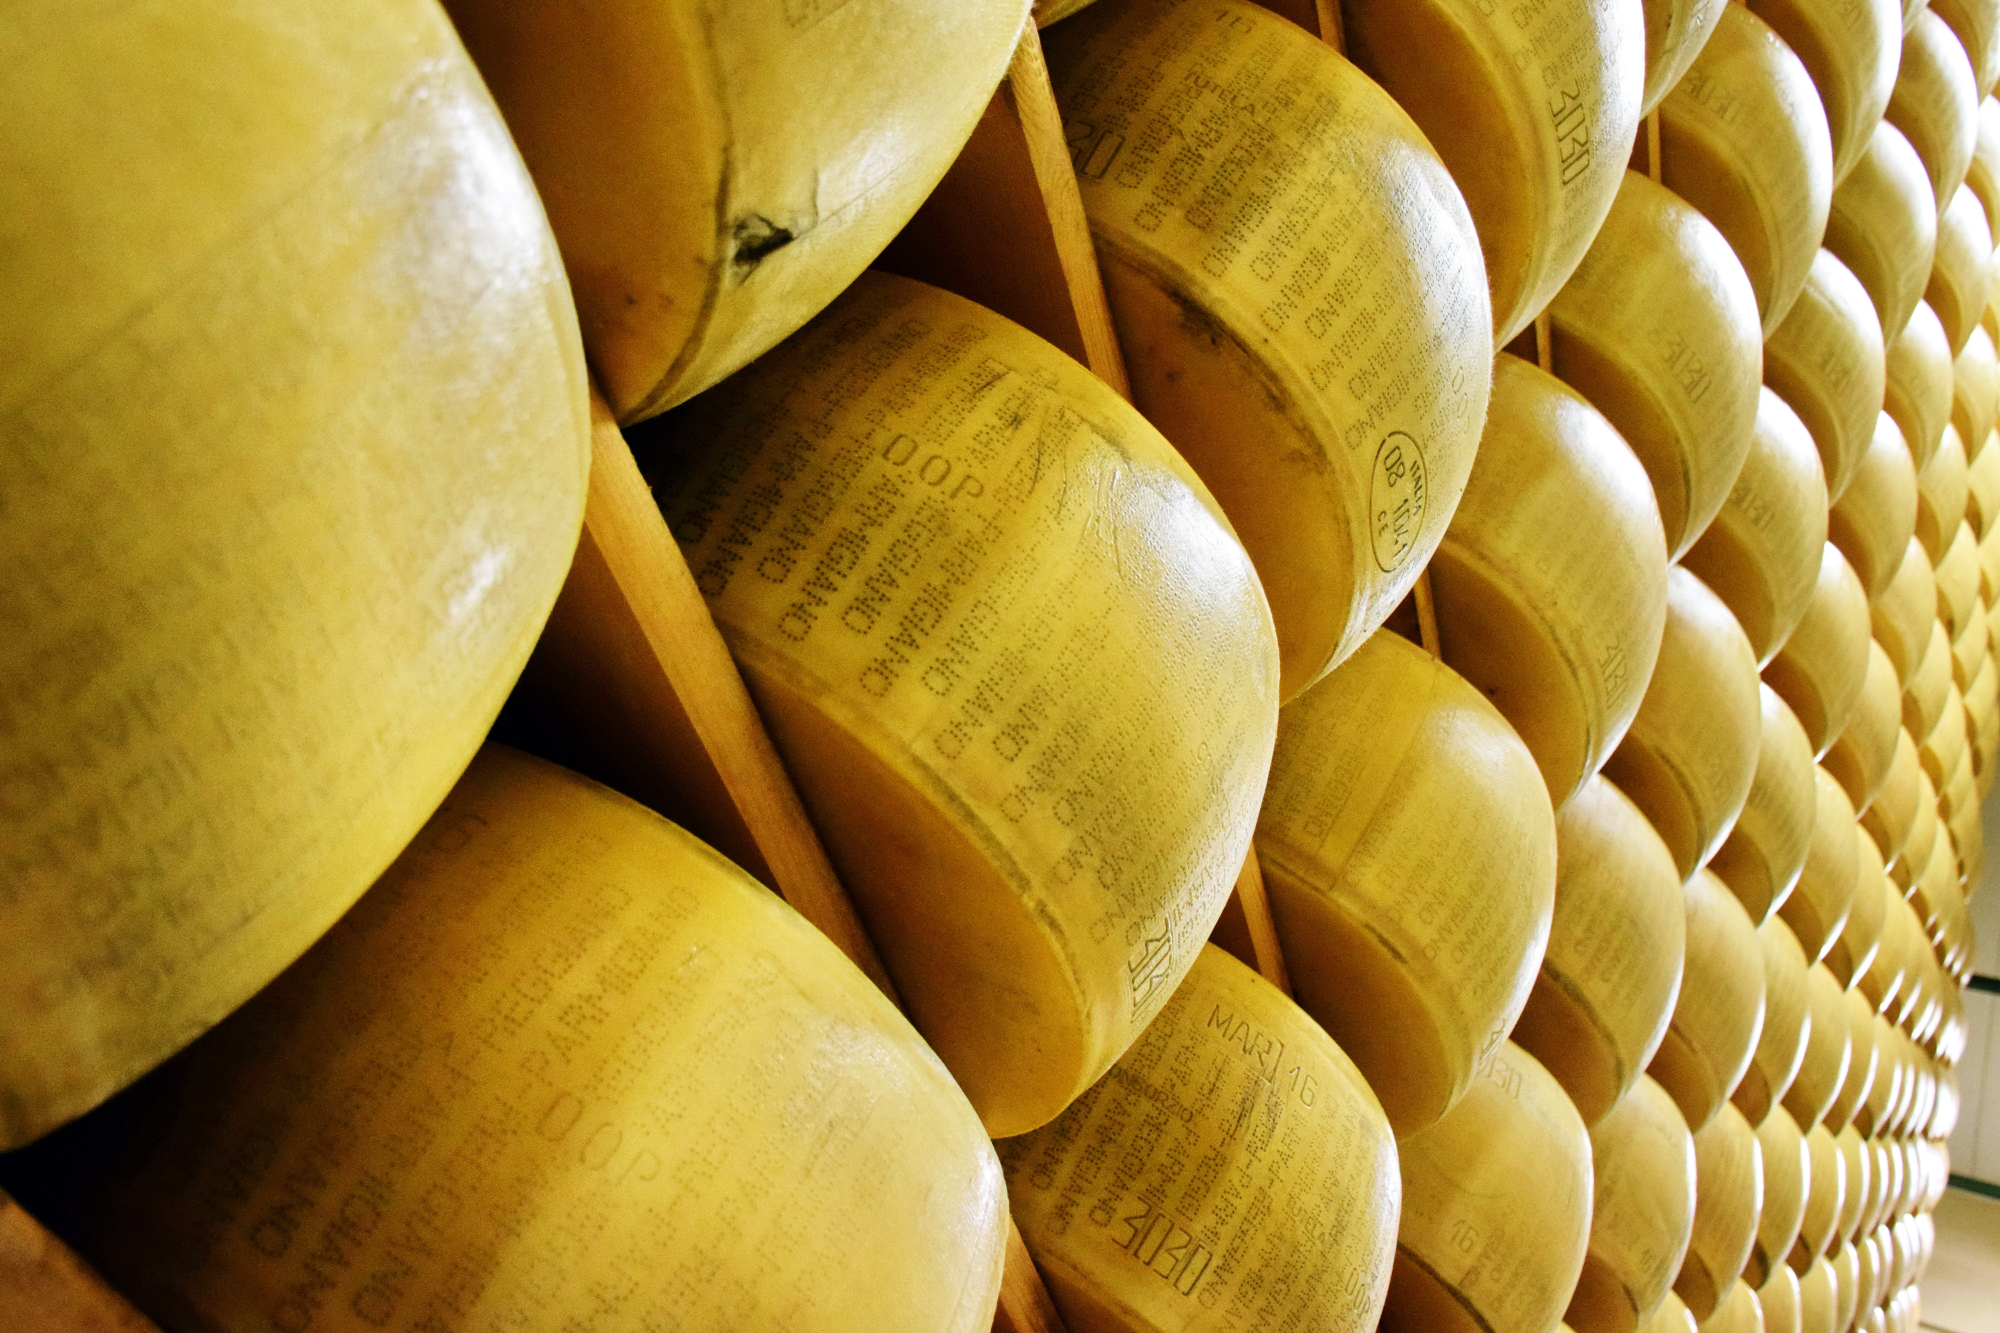 Parmigiano Reggiano and traditional balsamic vinegar of Modena